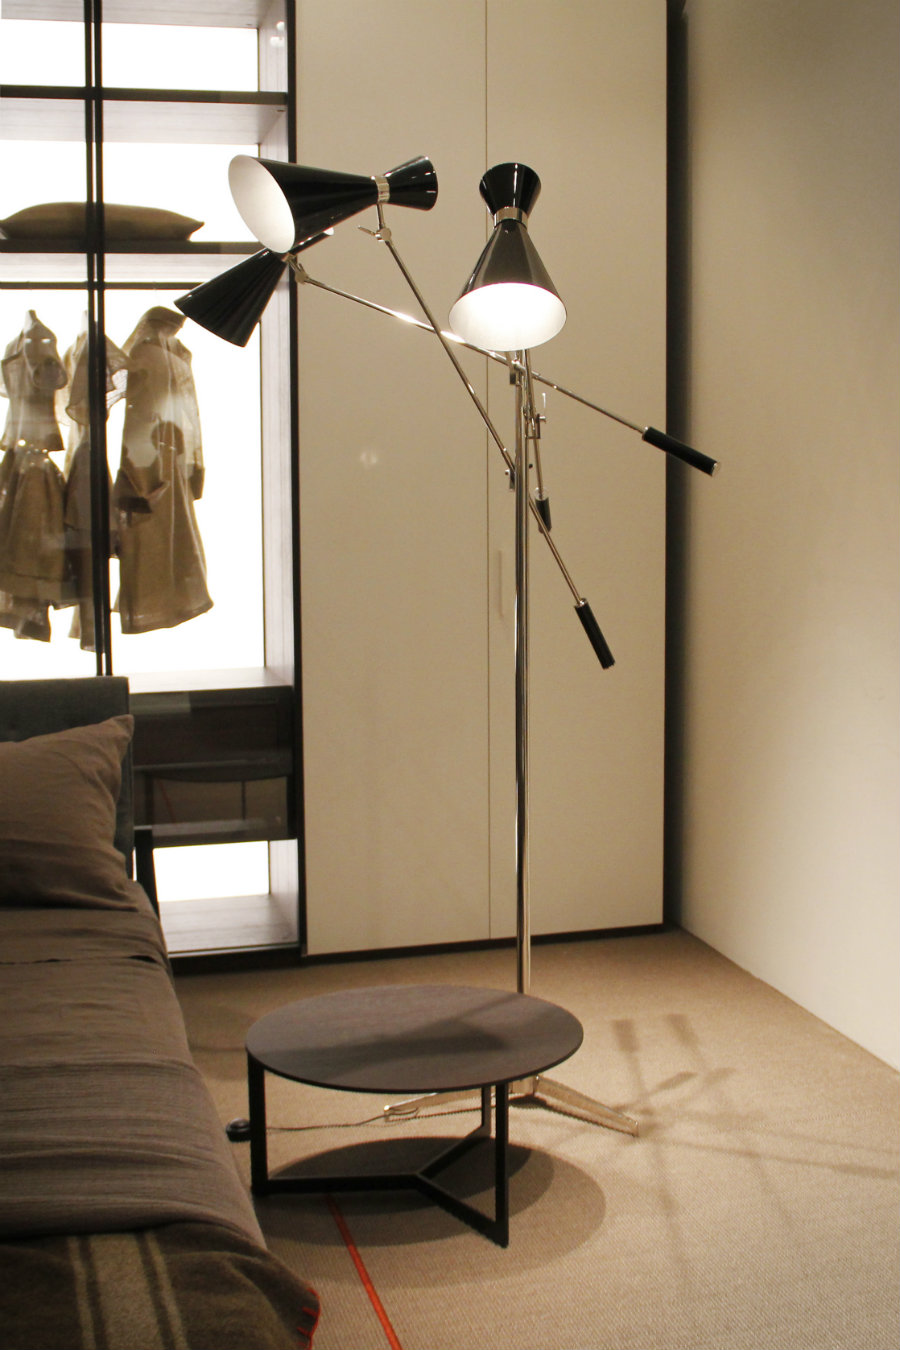 Lighting Ideas You Must Have modern lighting Floor Modern Lighting Ideas You Must Have Bright Ideas An Adjustable 3 Light Floor Lamp That You   ll Love 3